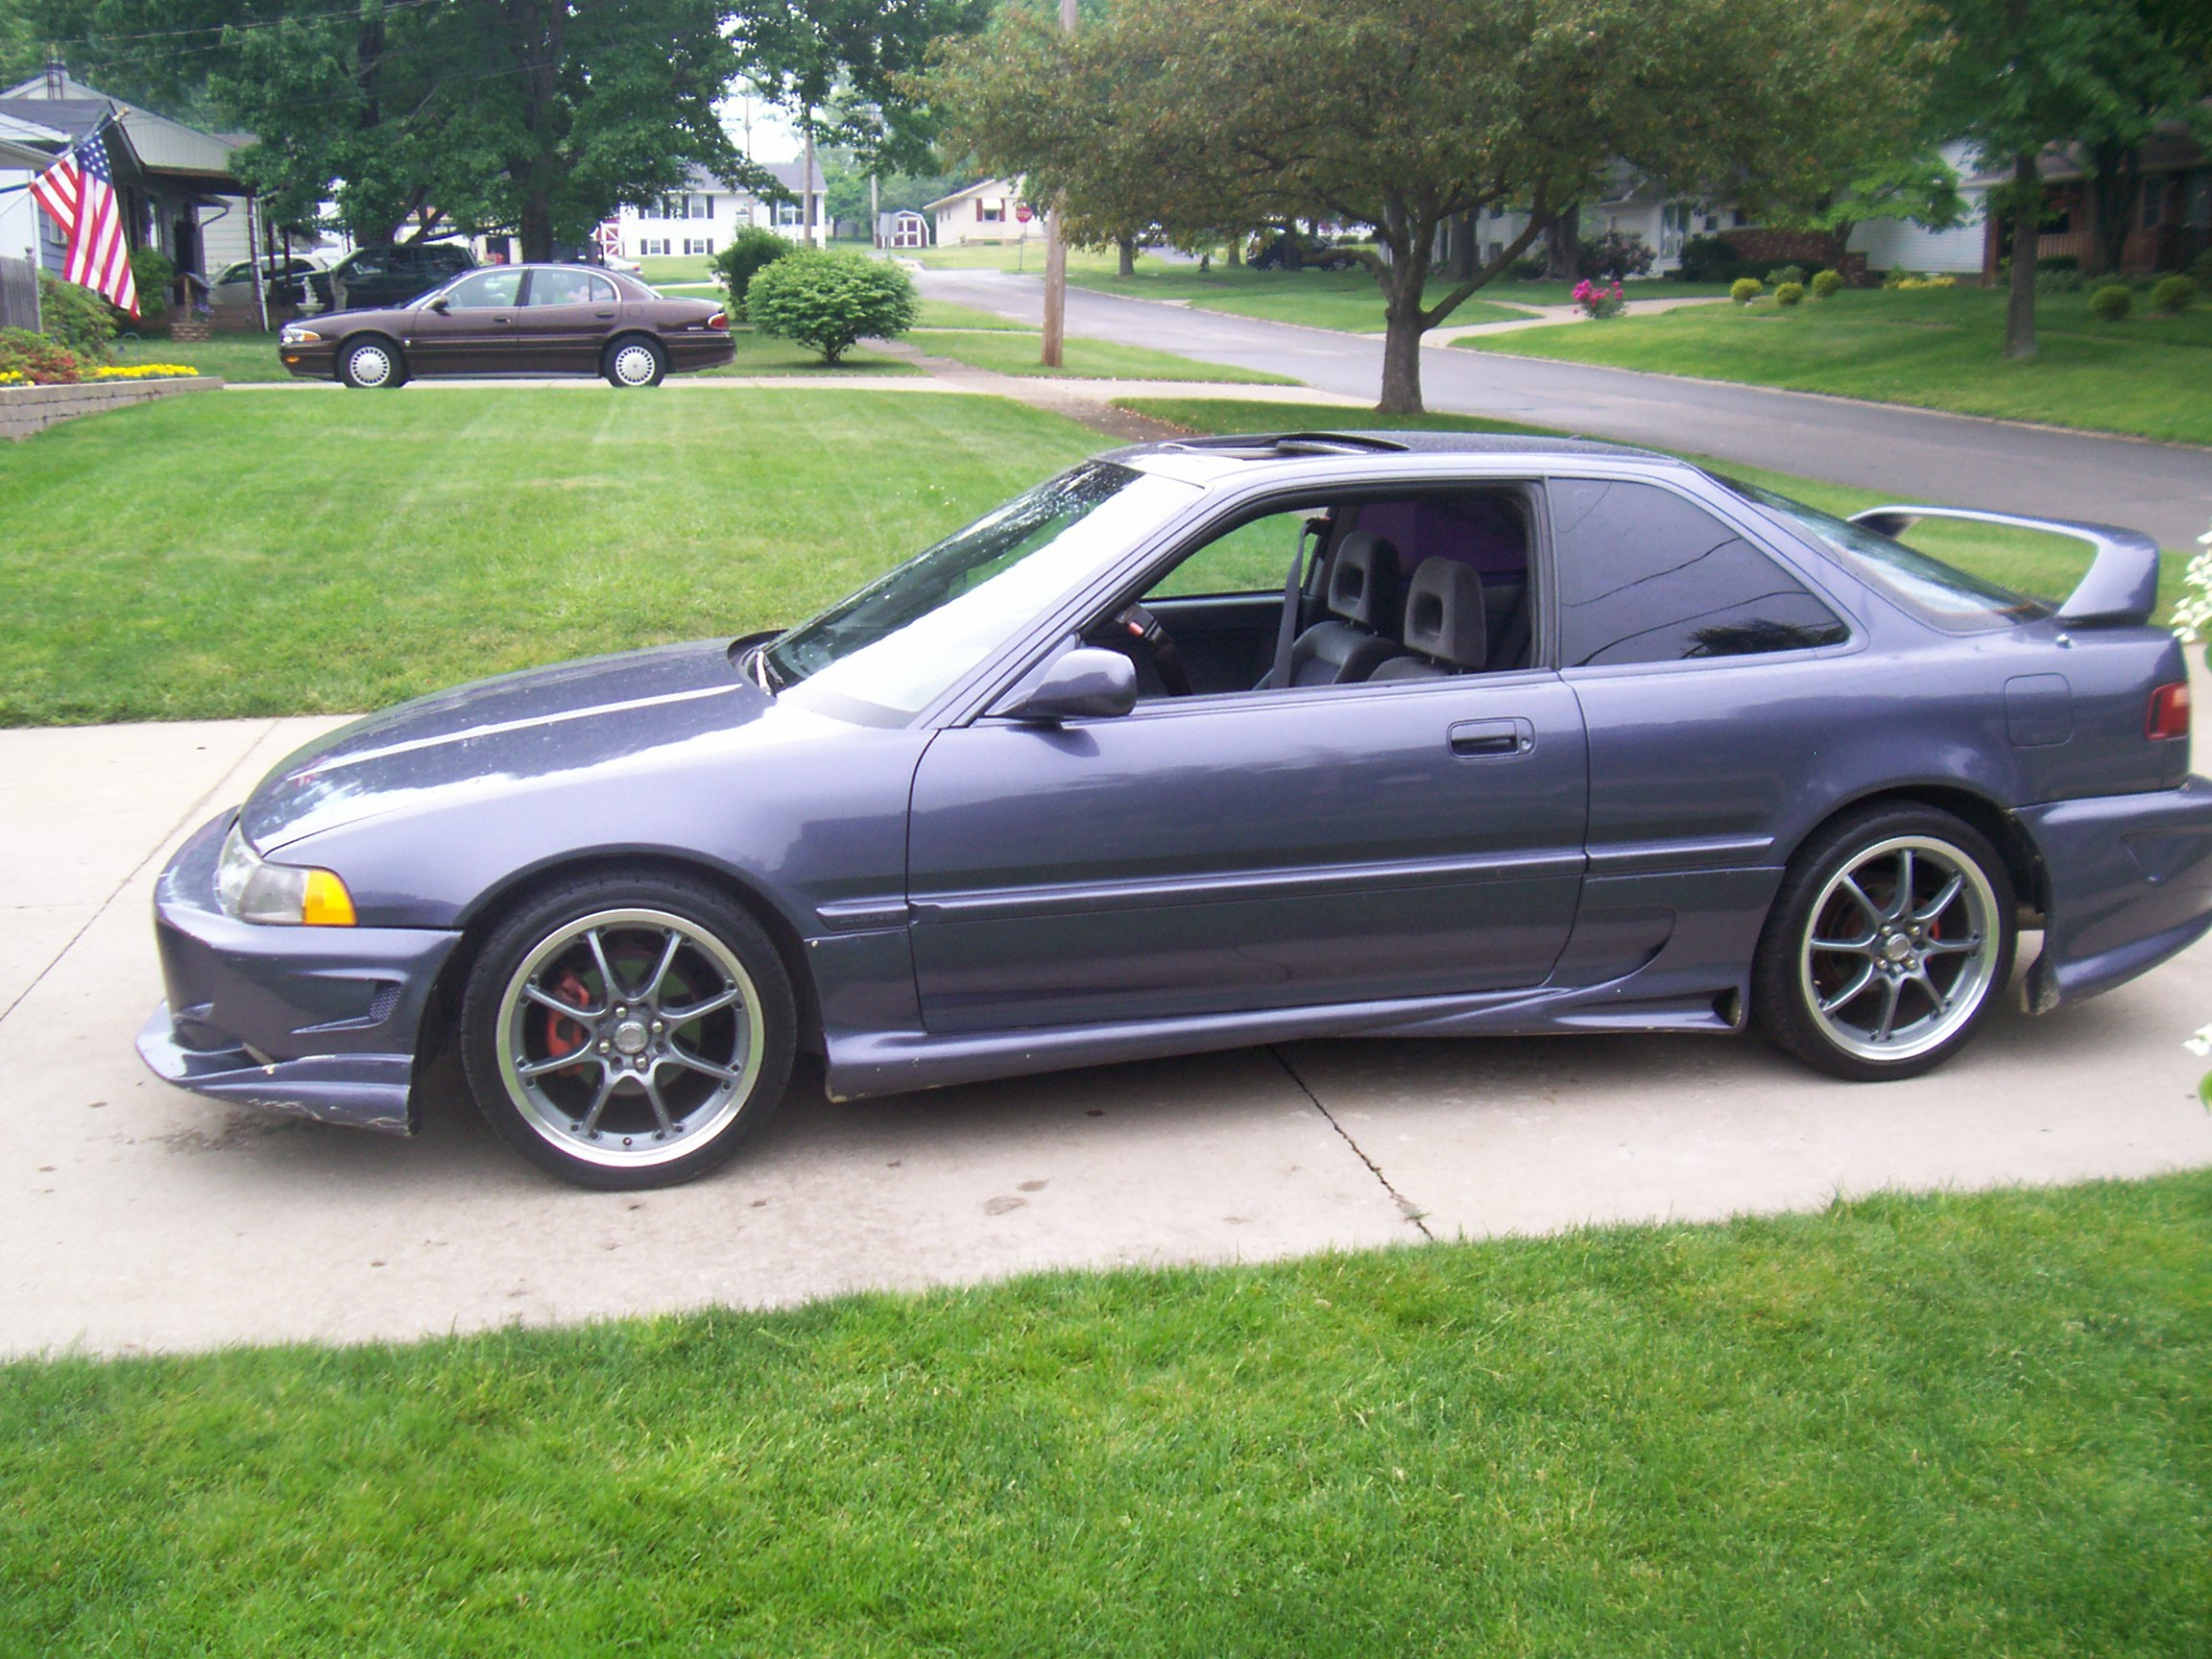 integra2009 1992 Acura Integra Specs, Photos, Modification Info at